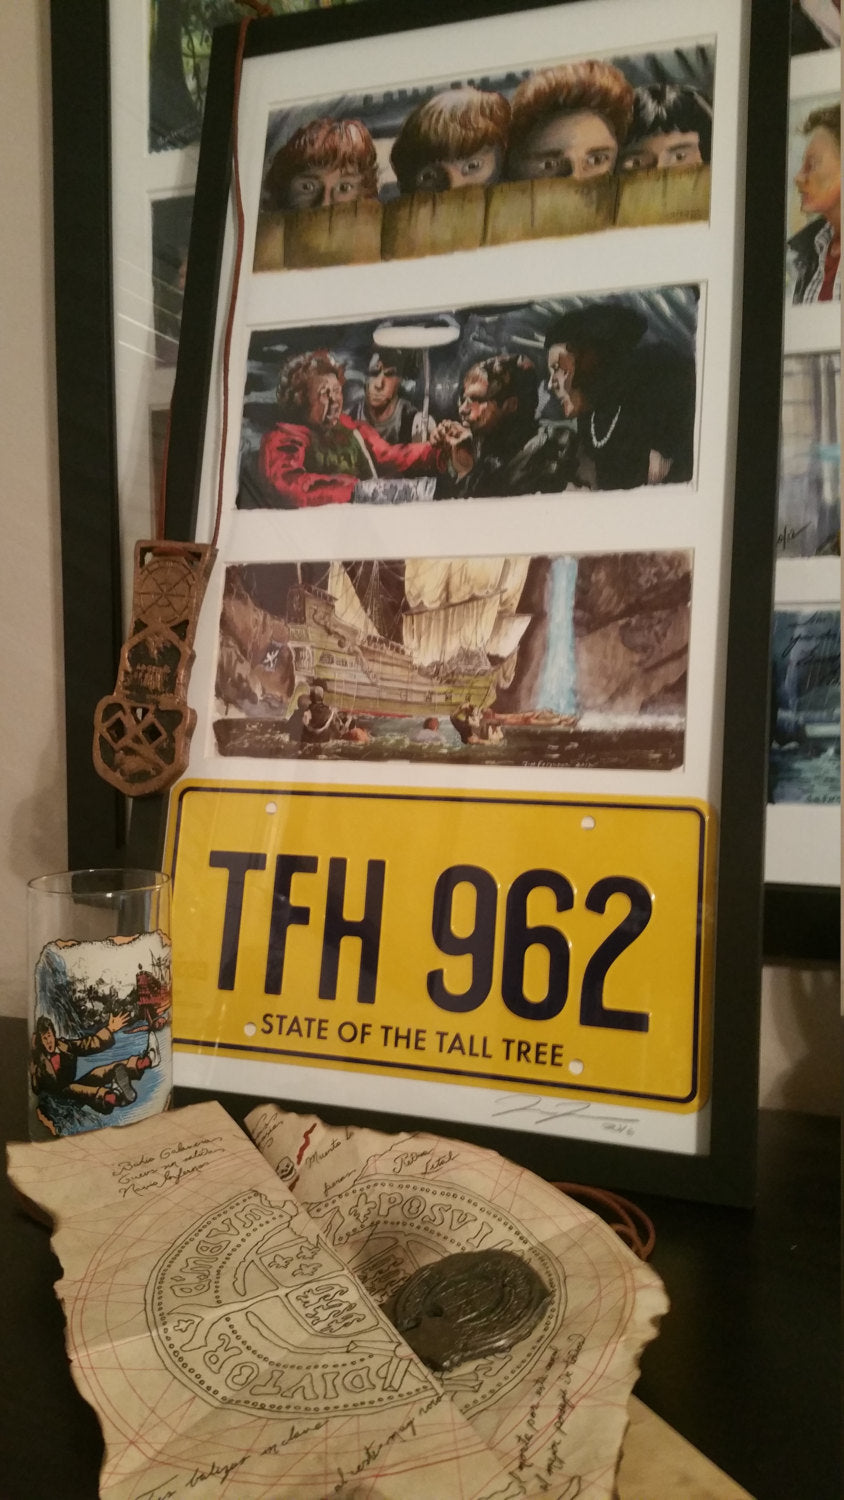 3 Framed Goonies prints with License Plate By Jim Ferguson